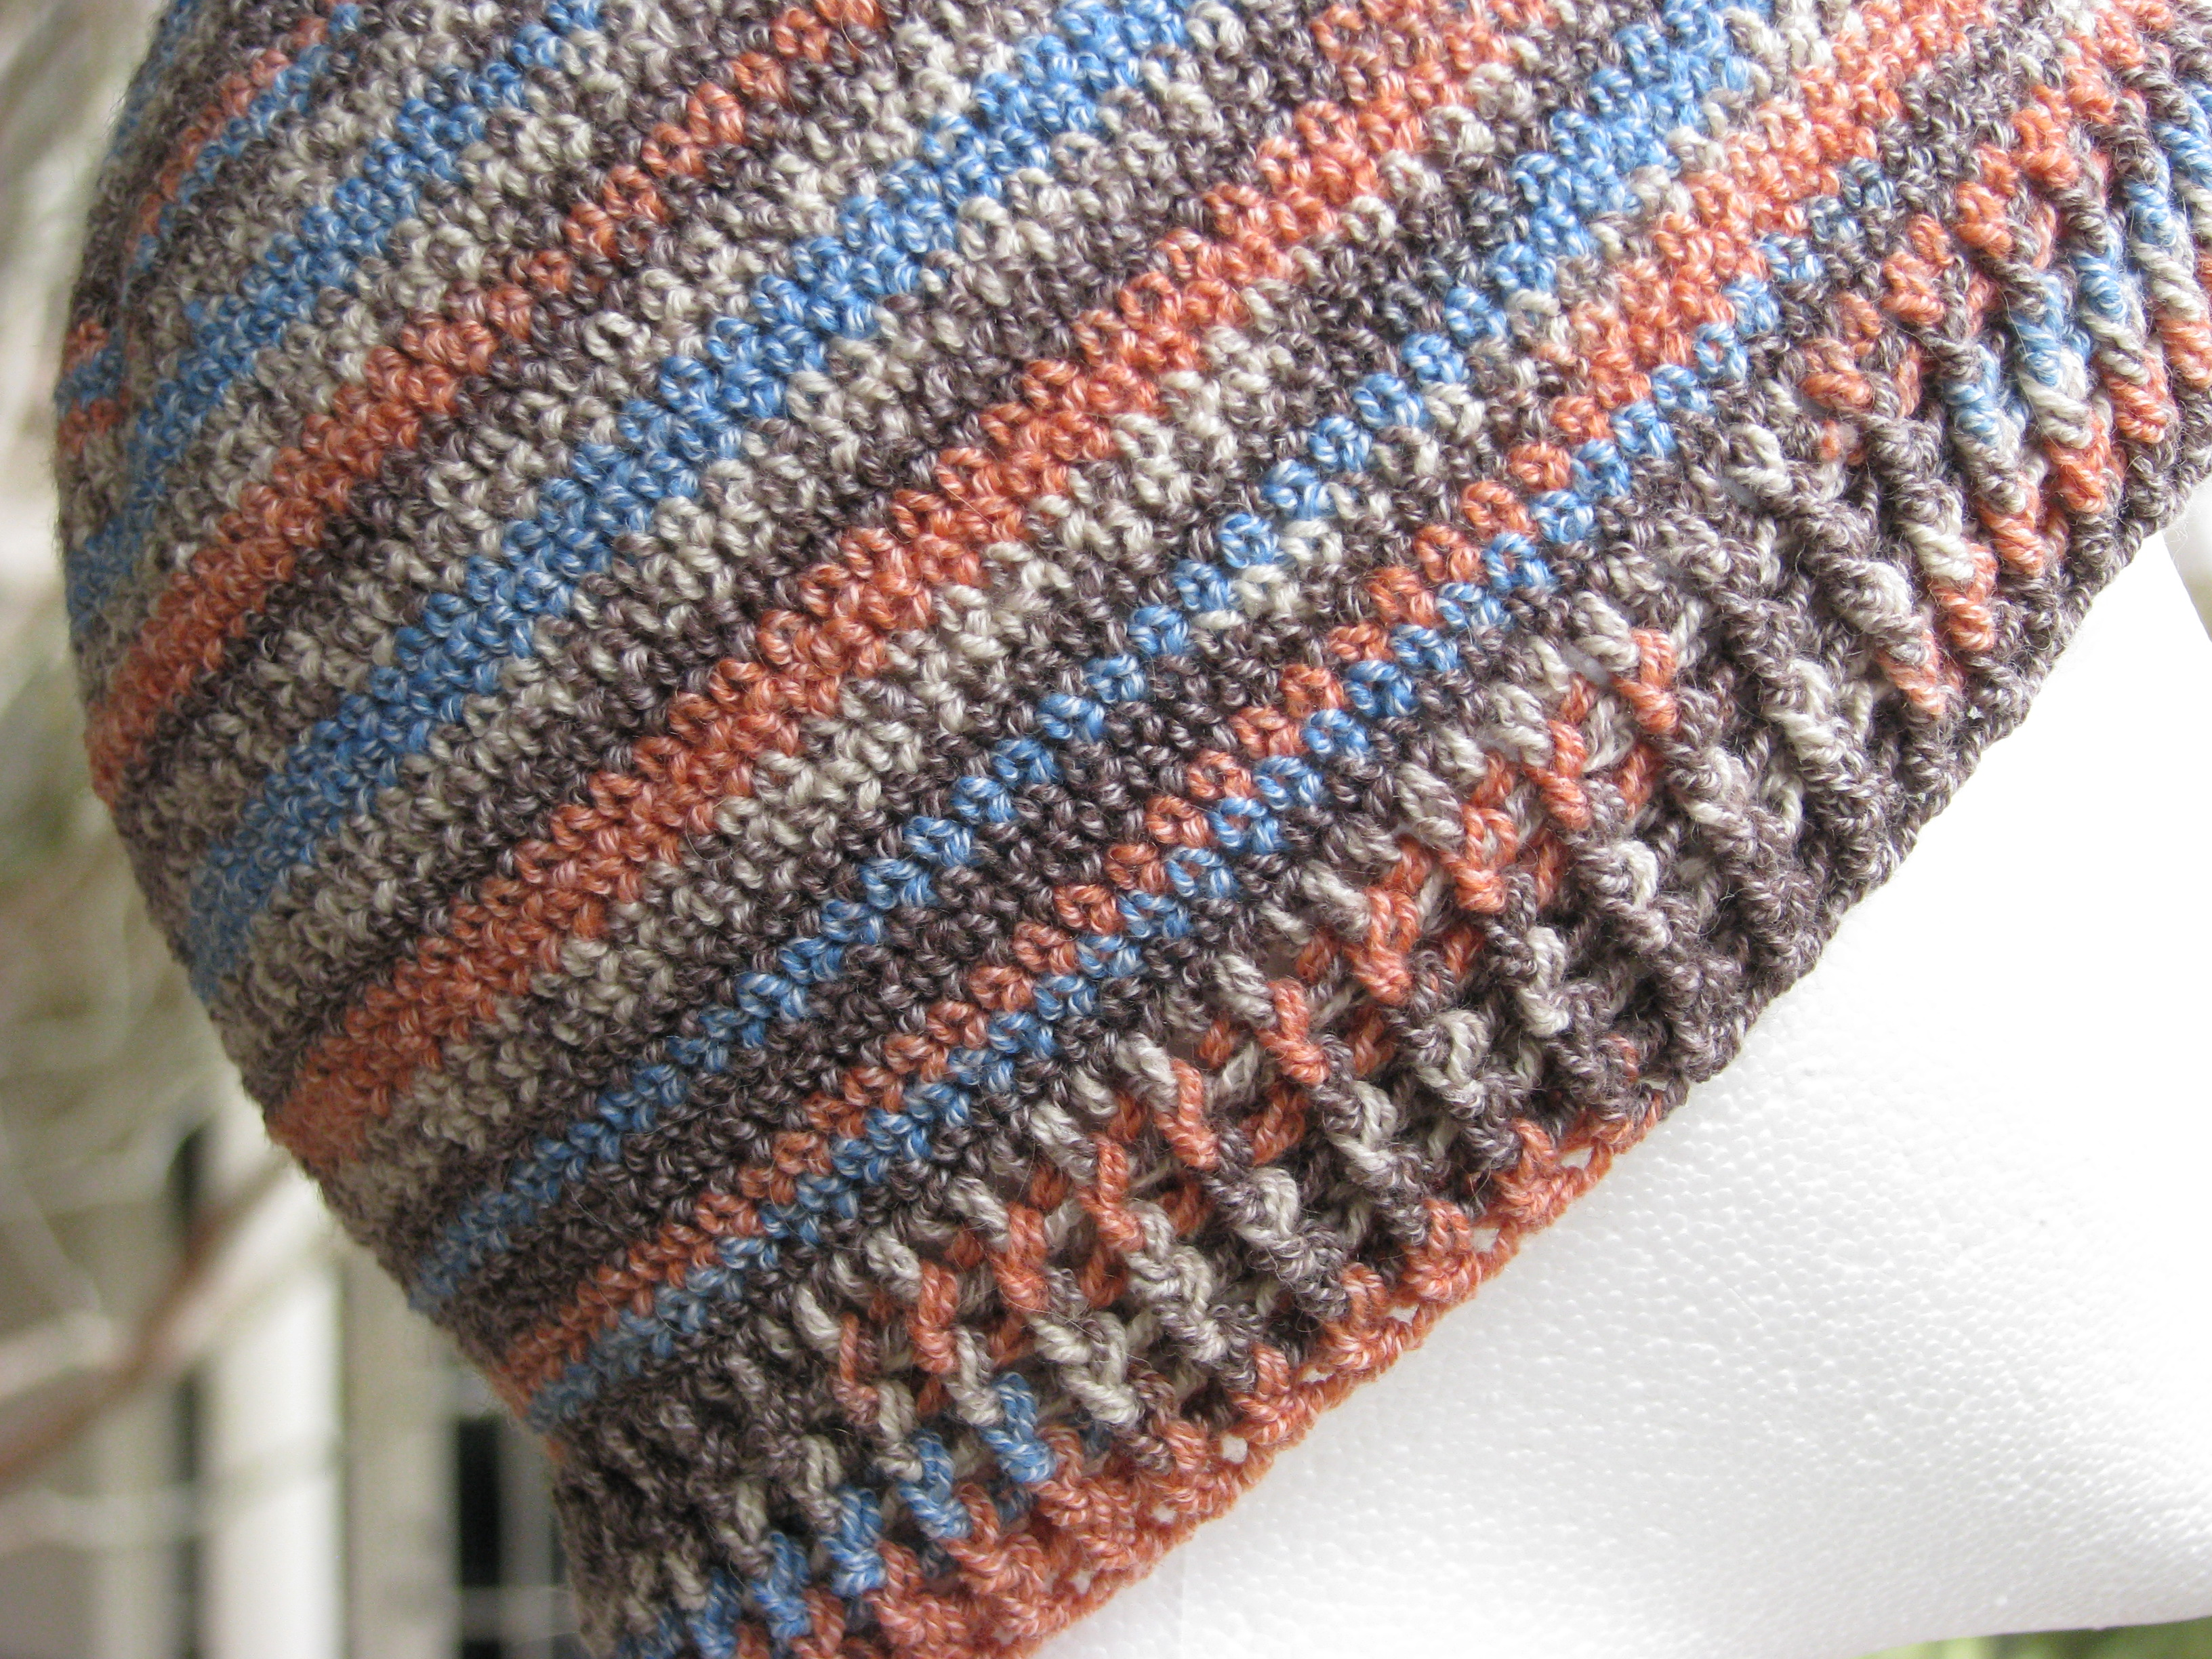 Crocheting Yarn : Single crochet gives nice results with sock yarn striping.